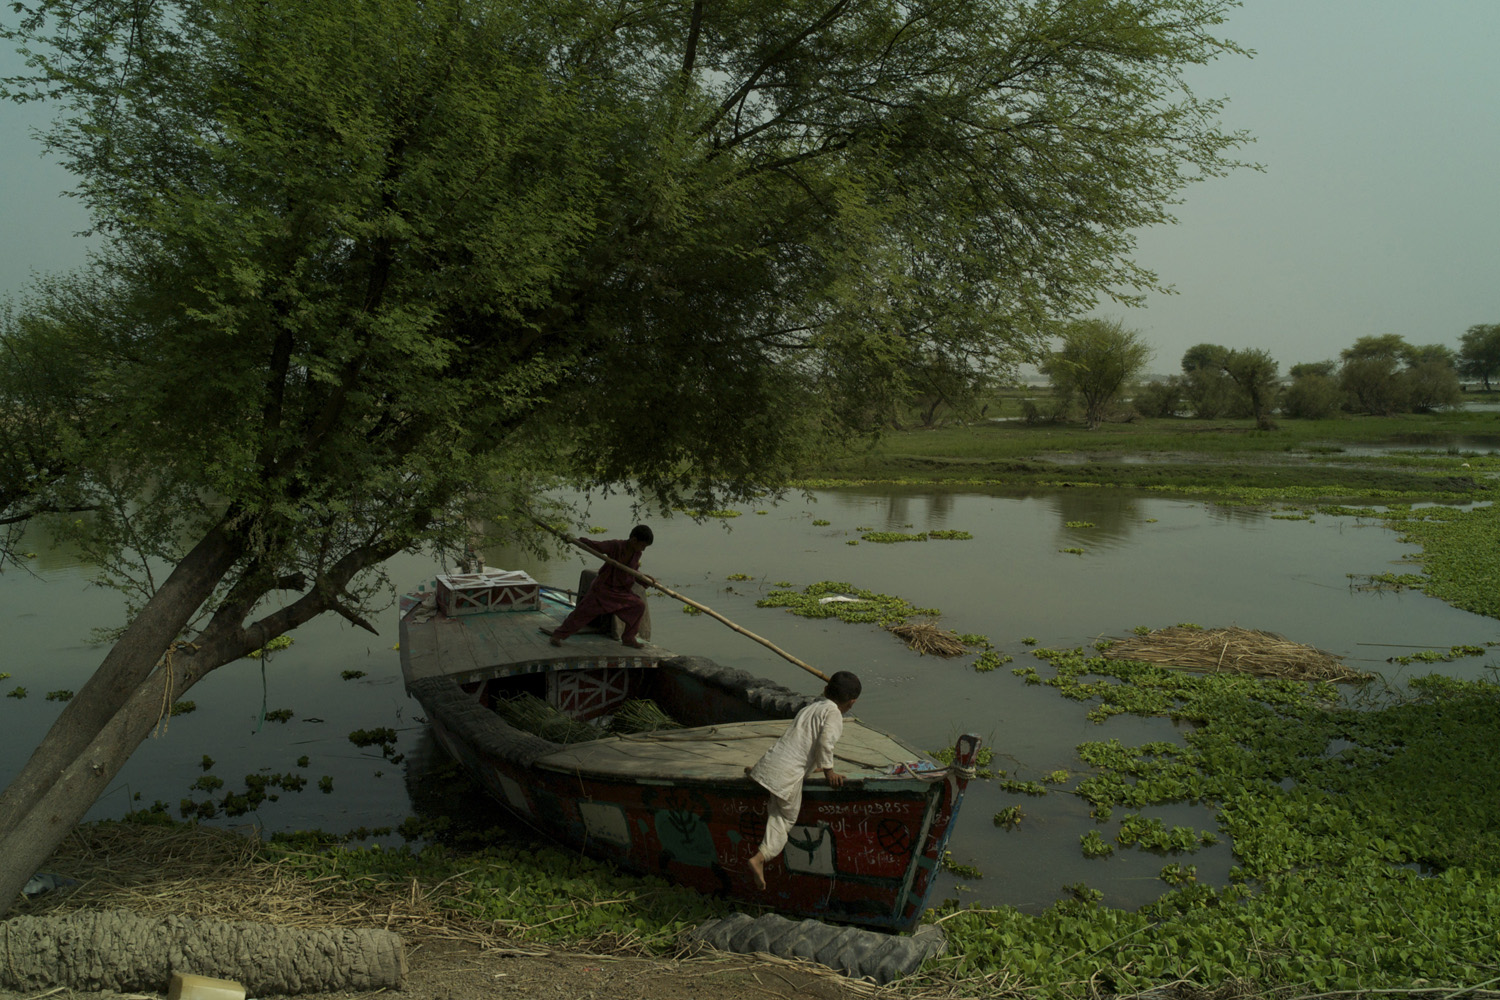 July 21, 2011. Setting out from the embankment below their home in rural Muzaffargarh, brothers Shaista Kawnal and Muhammad Aqib push away from the shore using a bamboo pole as they head out across the flood waters in Pakistan.